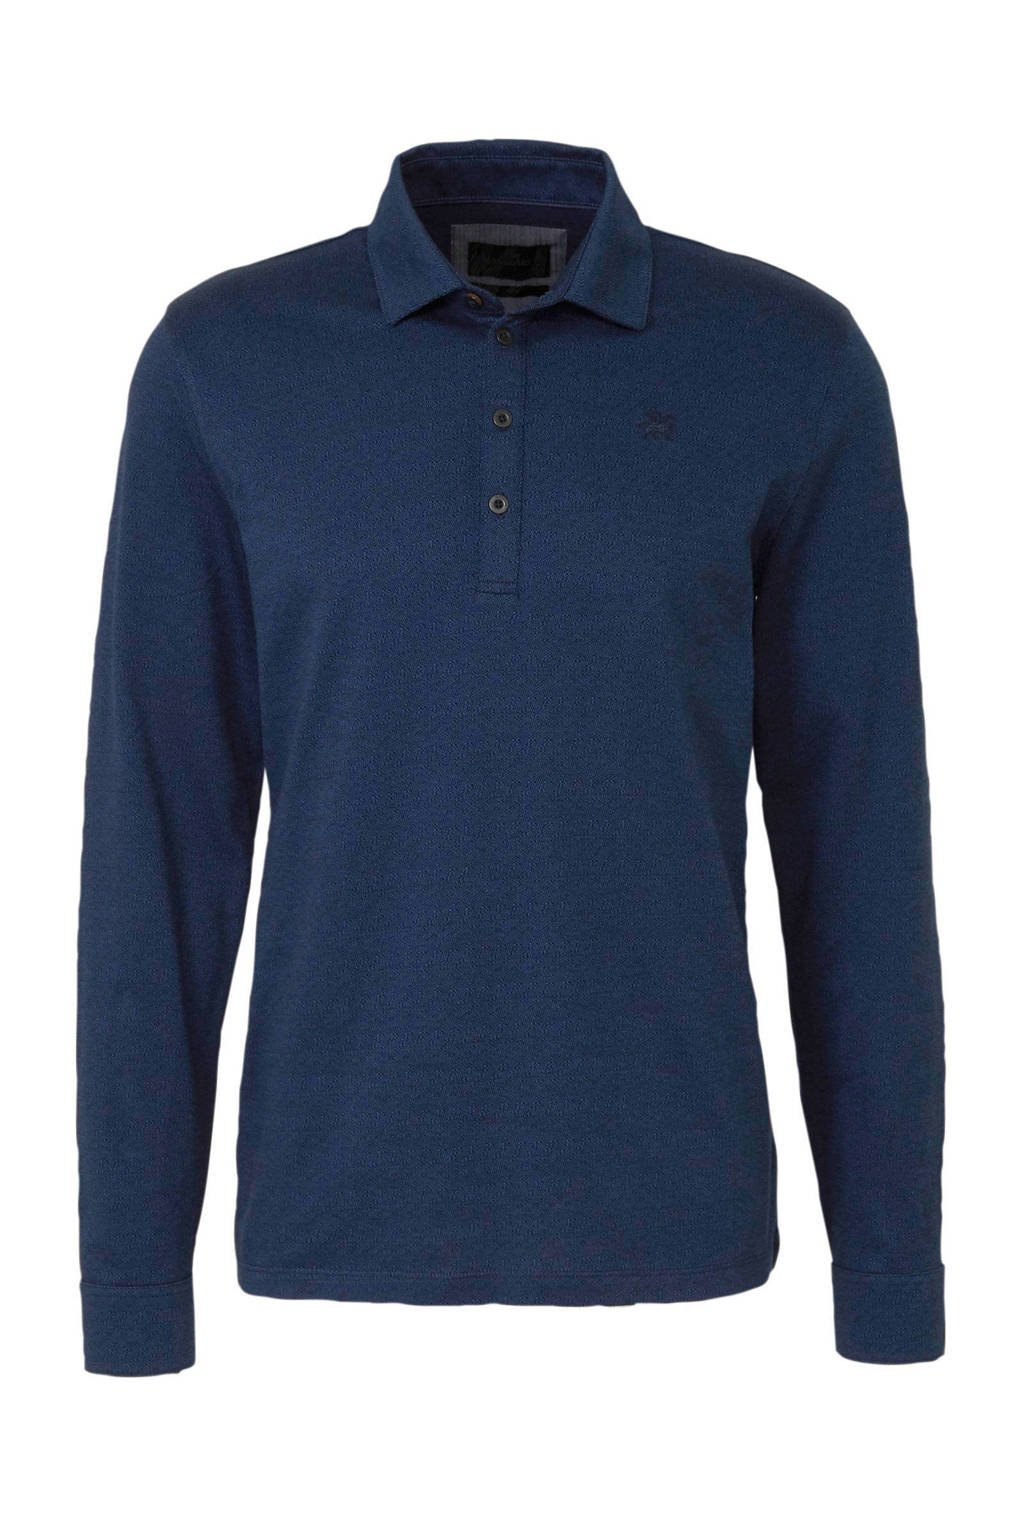 Vanguard regular fit polo donkerblauw, Donkerblauw